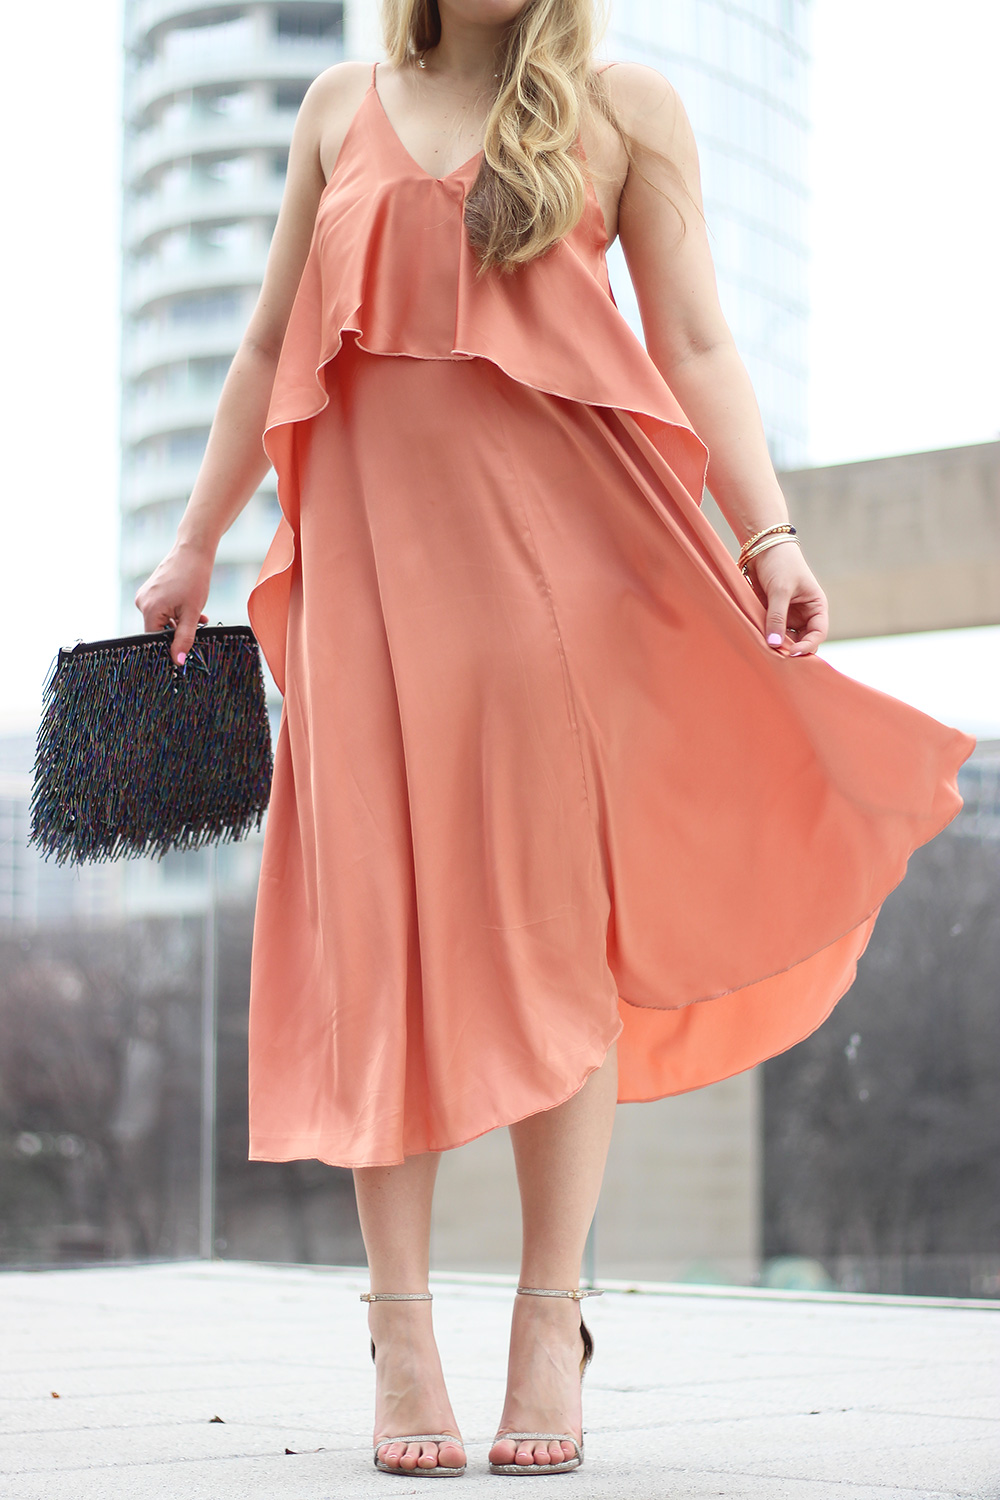 Traffic Stopping Coral Dress By Cameron Proffitt